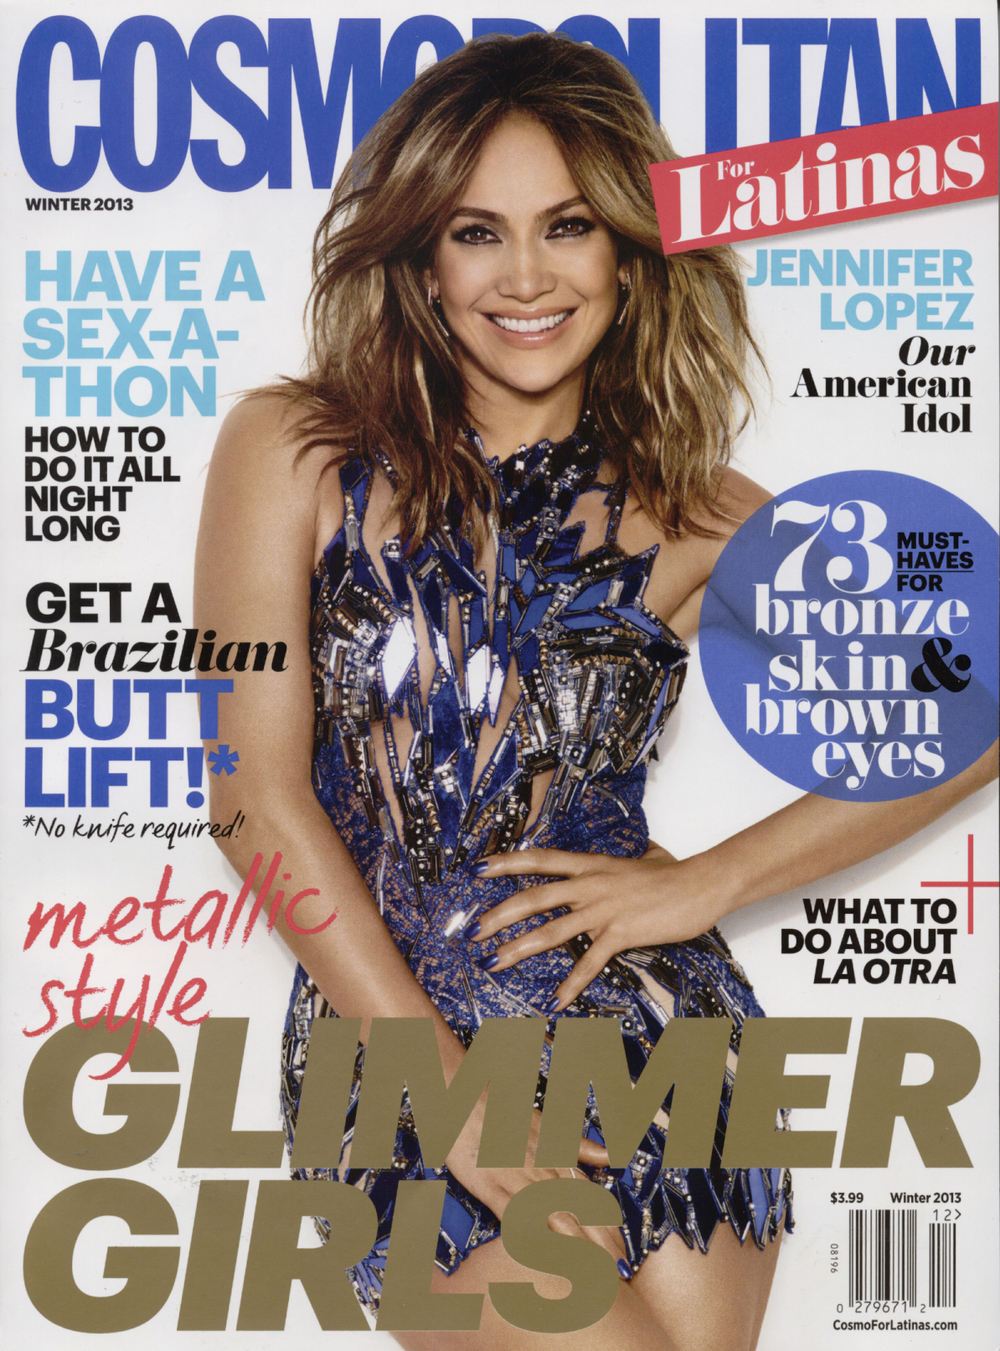 Cosmopolitan for Latinas Cover_12.2_Hi.jpg